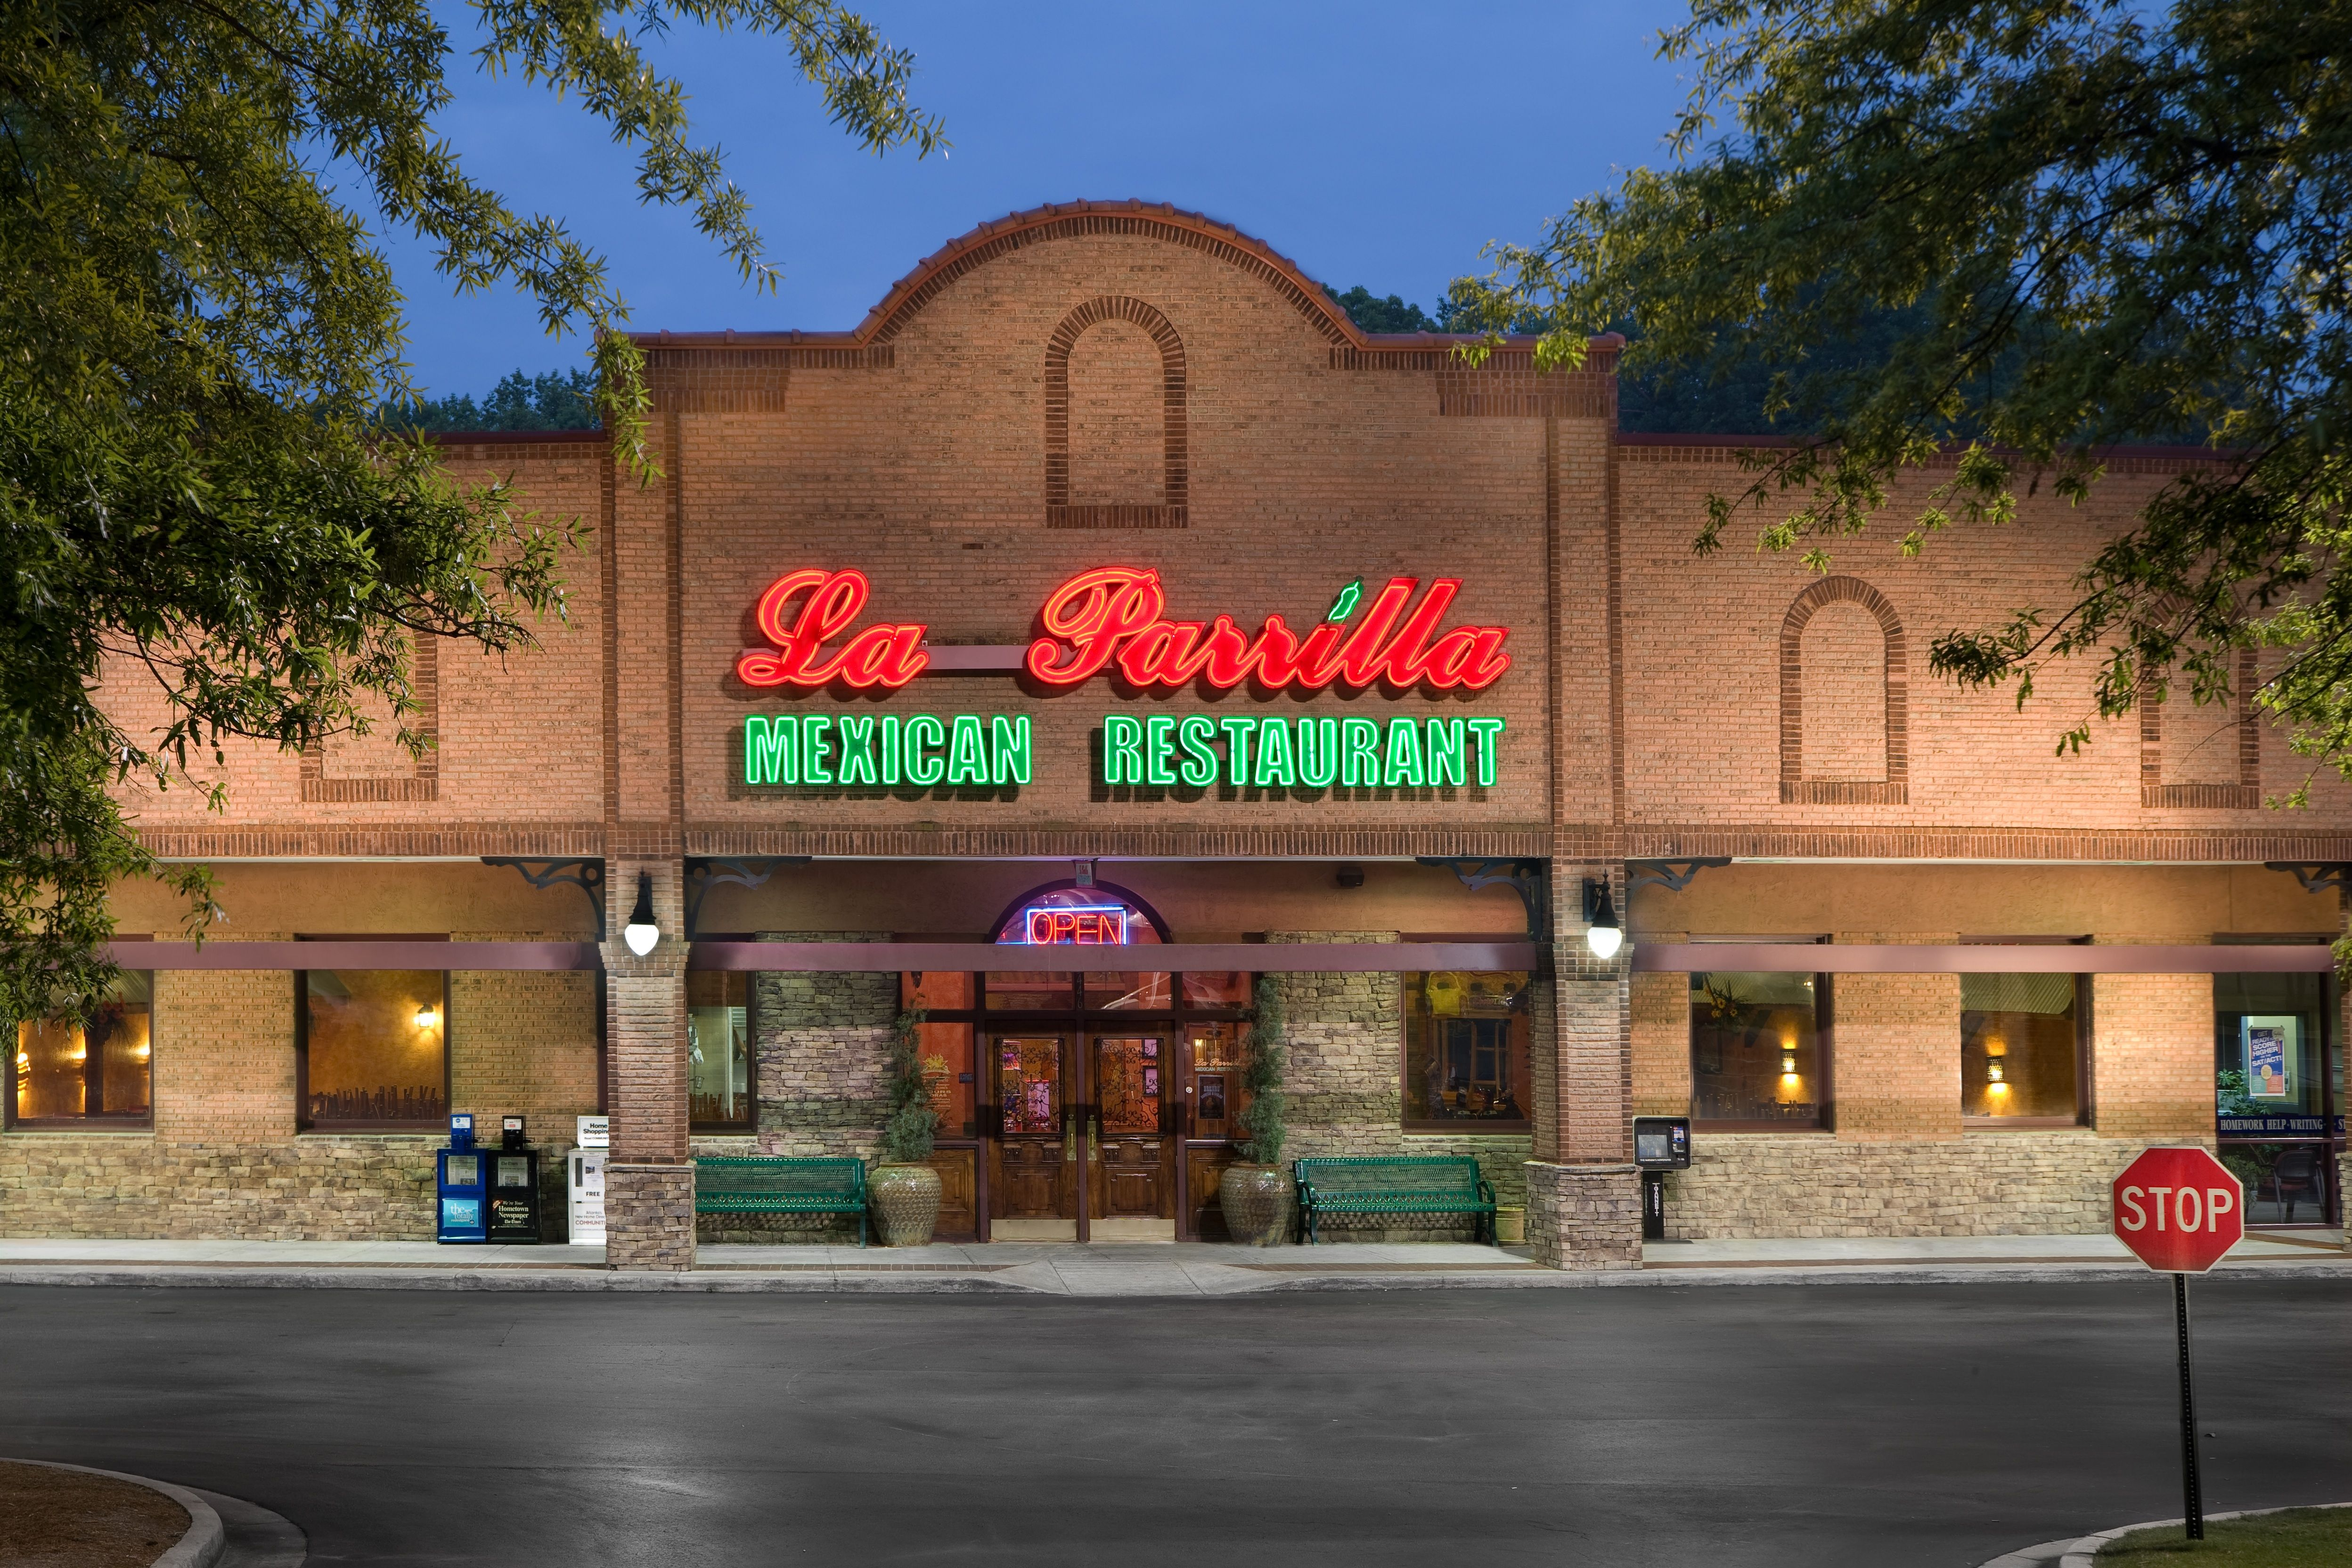 La Parrilla Mexican Restaurant Is A Chain Of Eating Establishments That Offers A Range Of Food Items And Bevera Mexican Restaurant Flowery Branch Visit Georgia